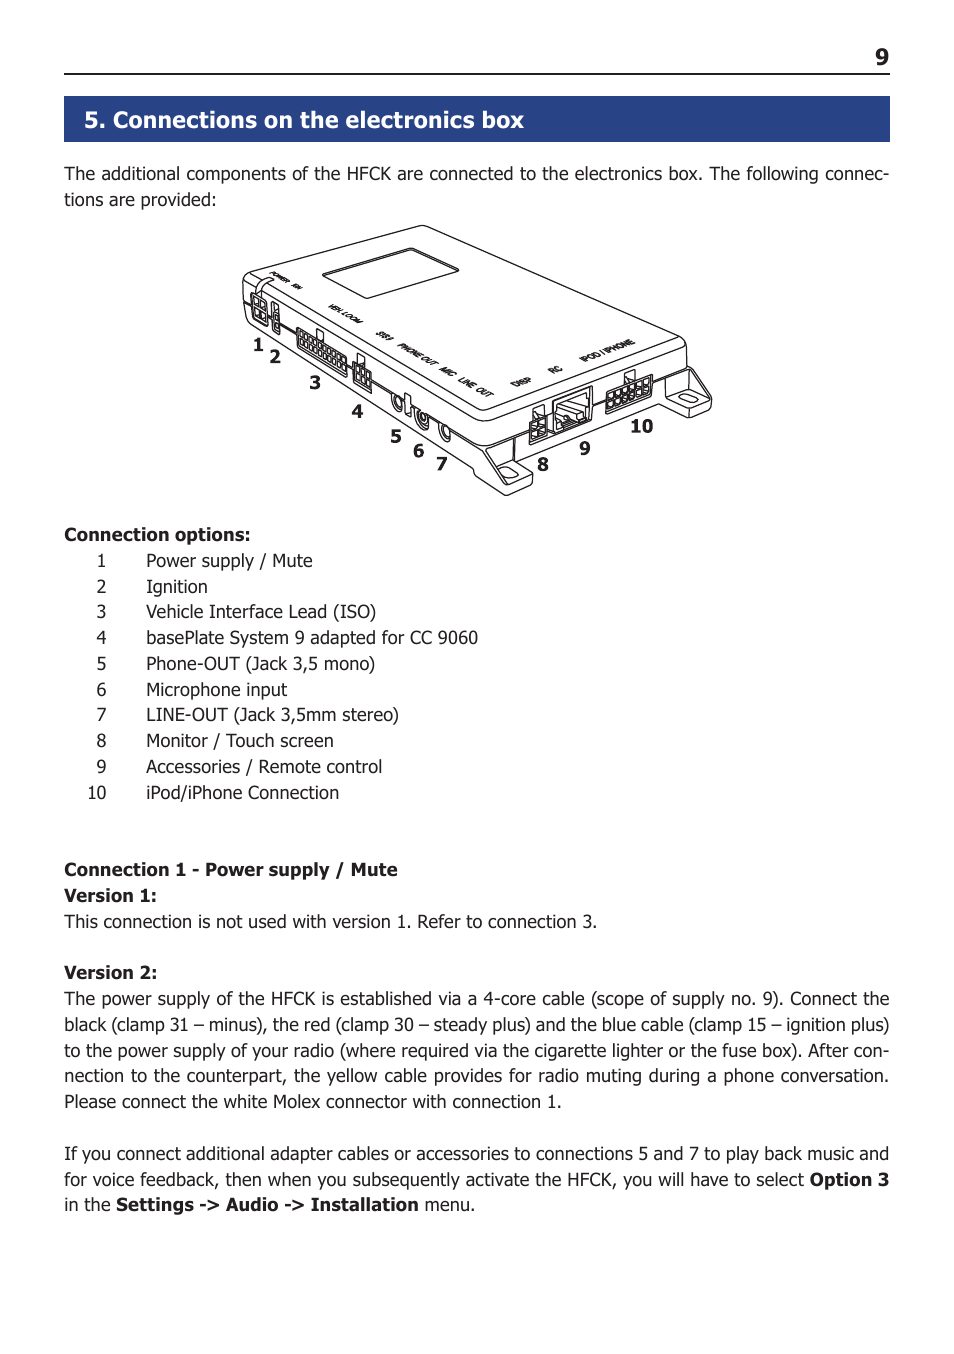 Connections On The Electronics Box Bury Cc 9060 Music User Manual Iphone 5 Cord Wiring Diagram Page 9 44